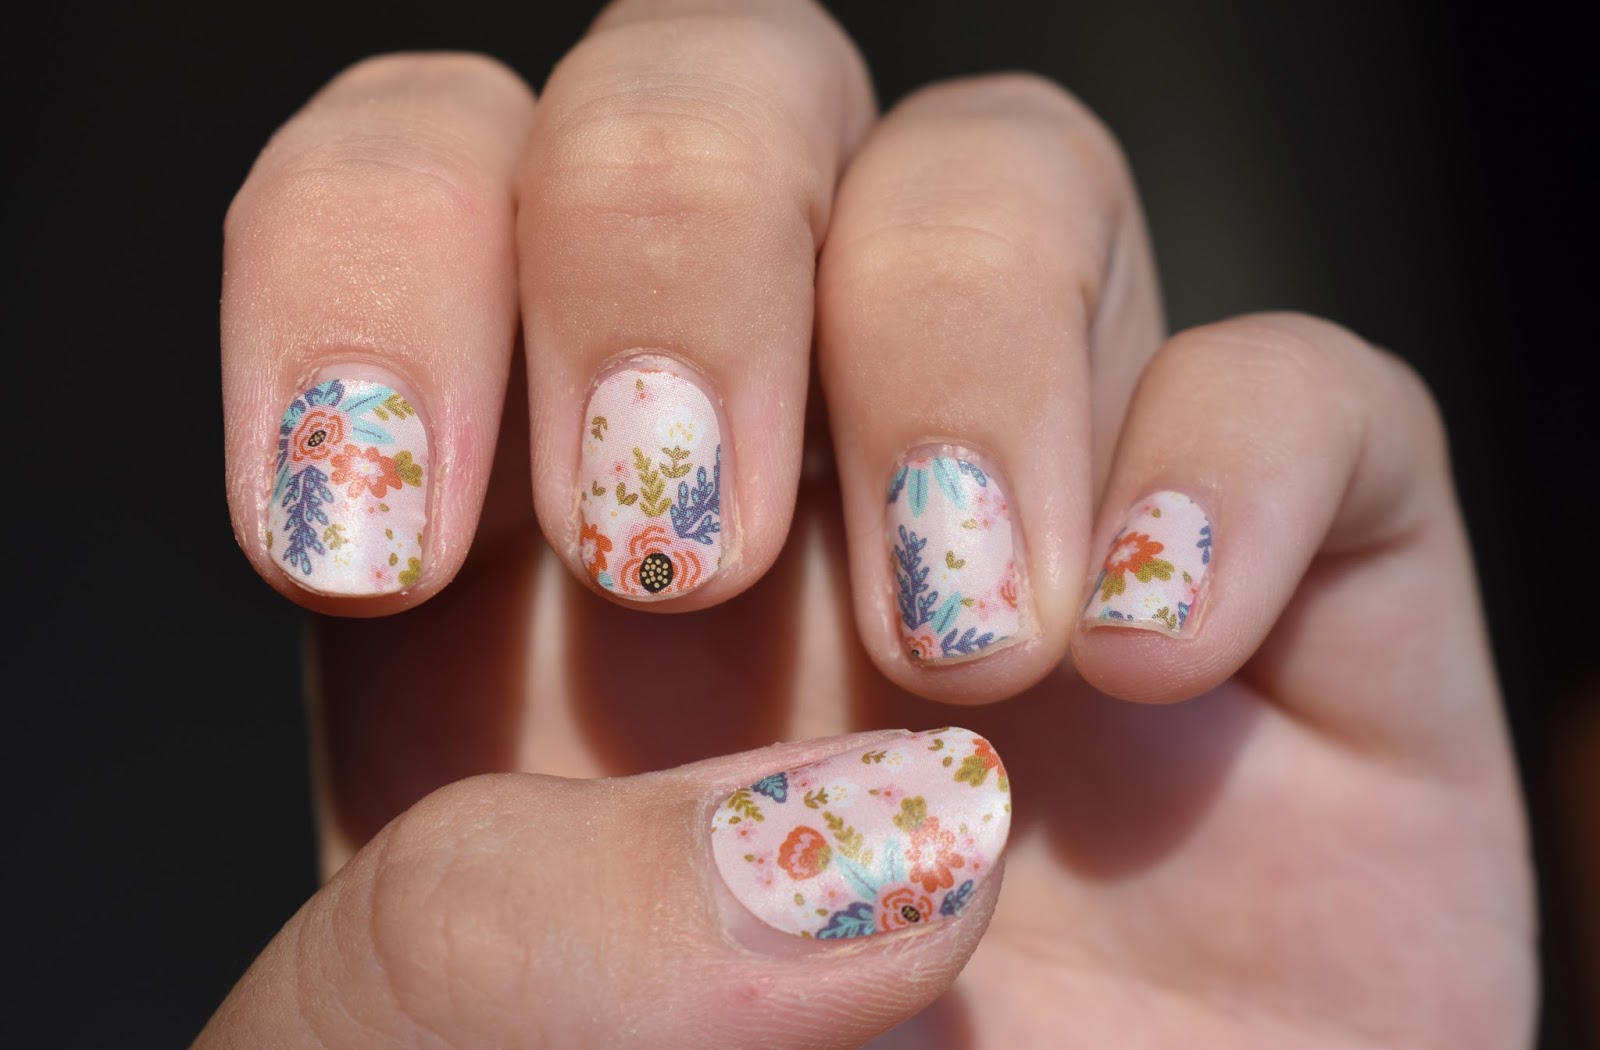 A Taylored Beauty: Jamberry Nail Wraps Application & Review